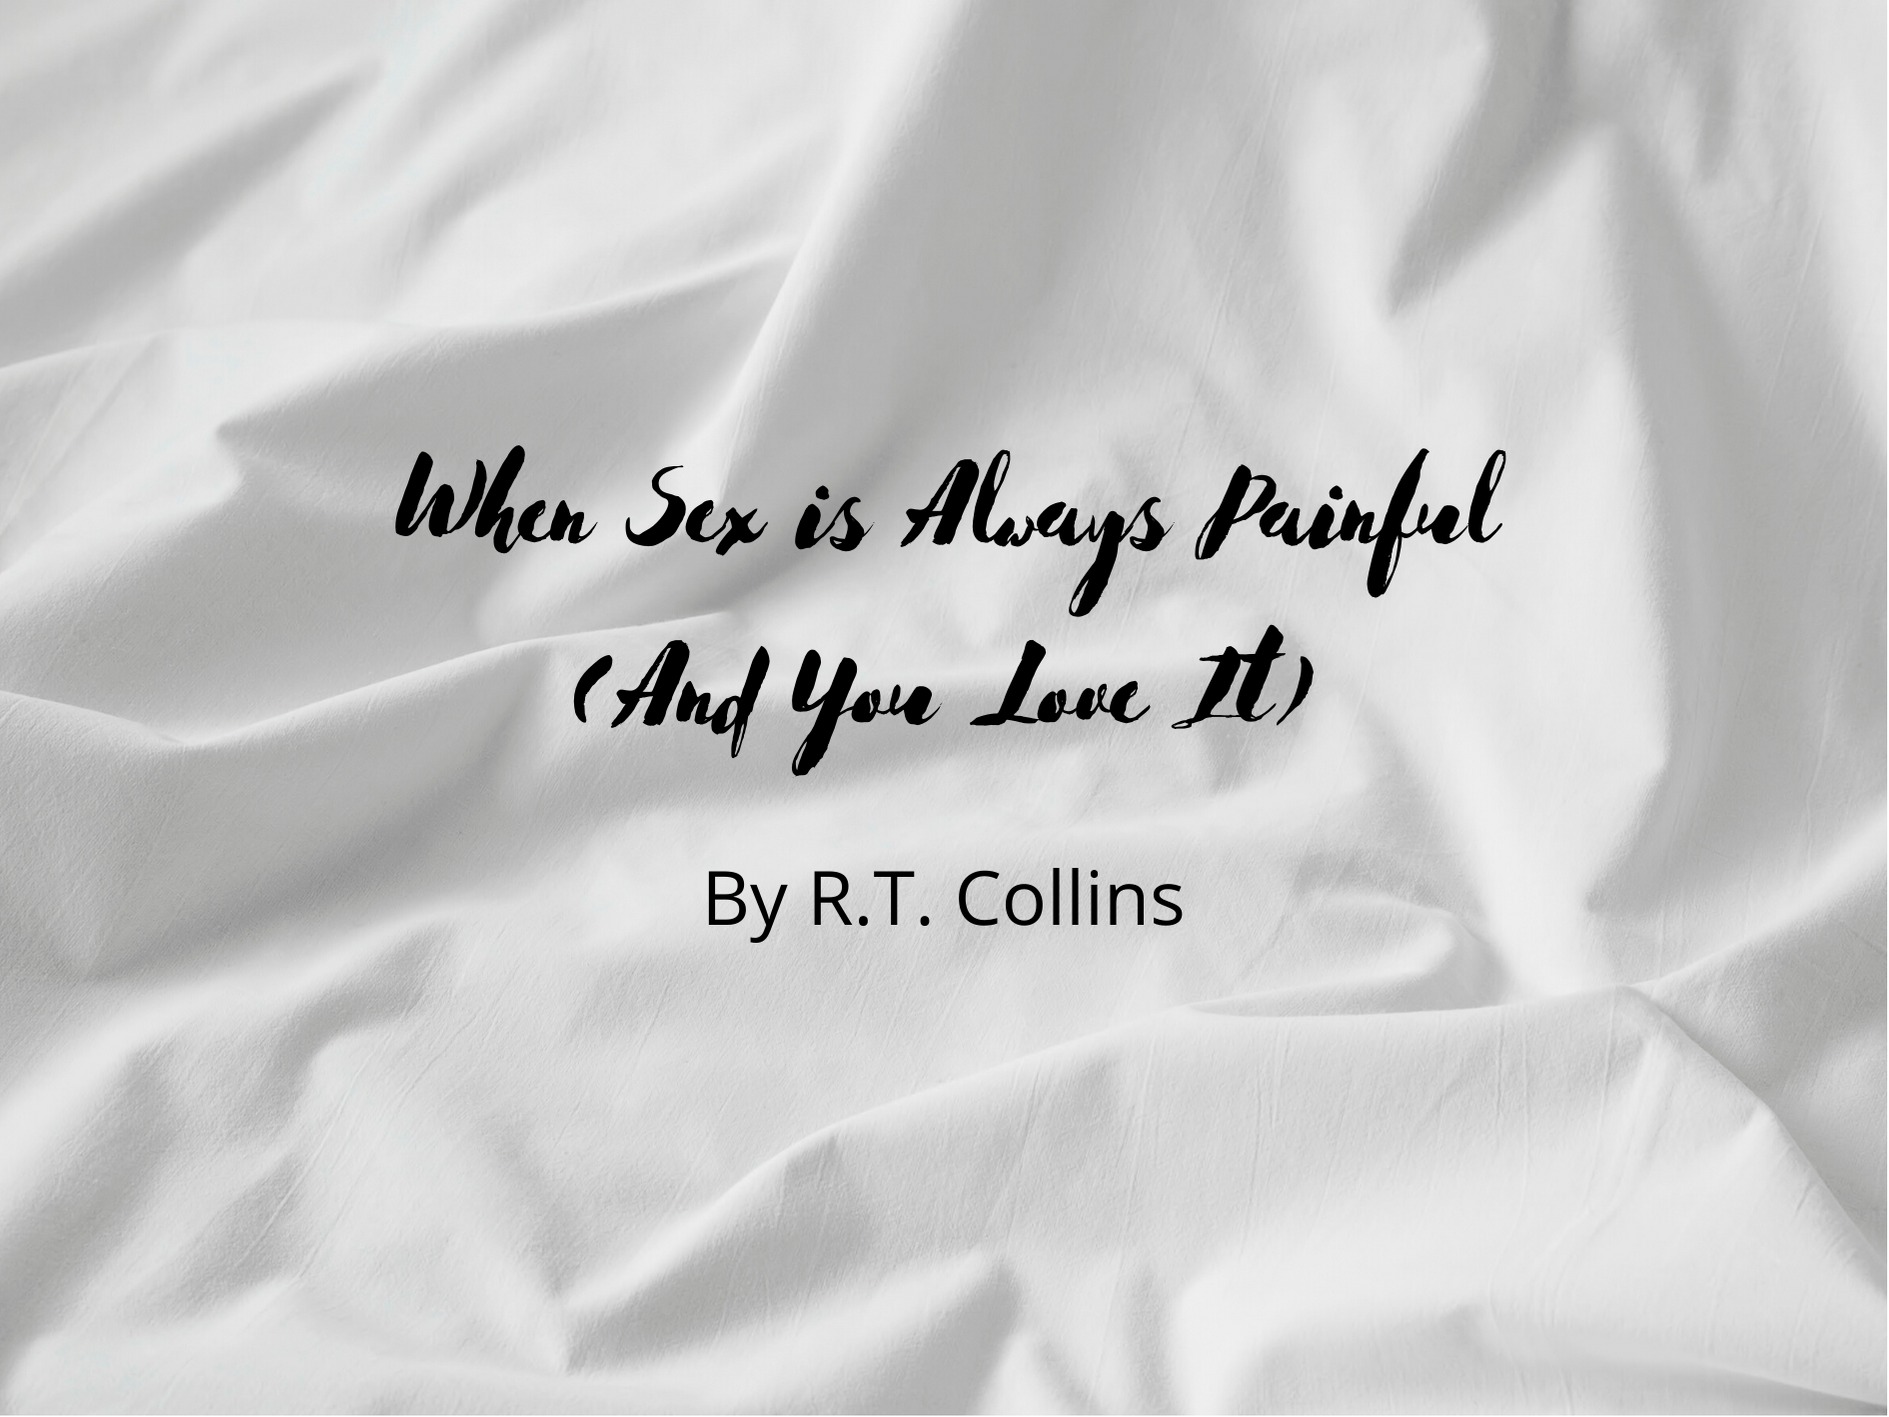 [Guest Blog] When Sex is Always Painful (And You Love It) by RT Collins